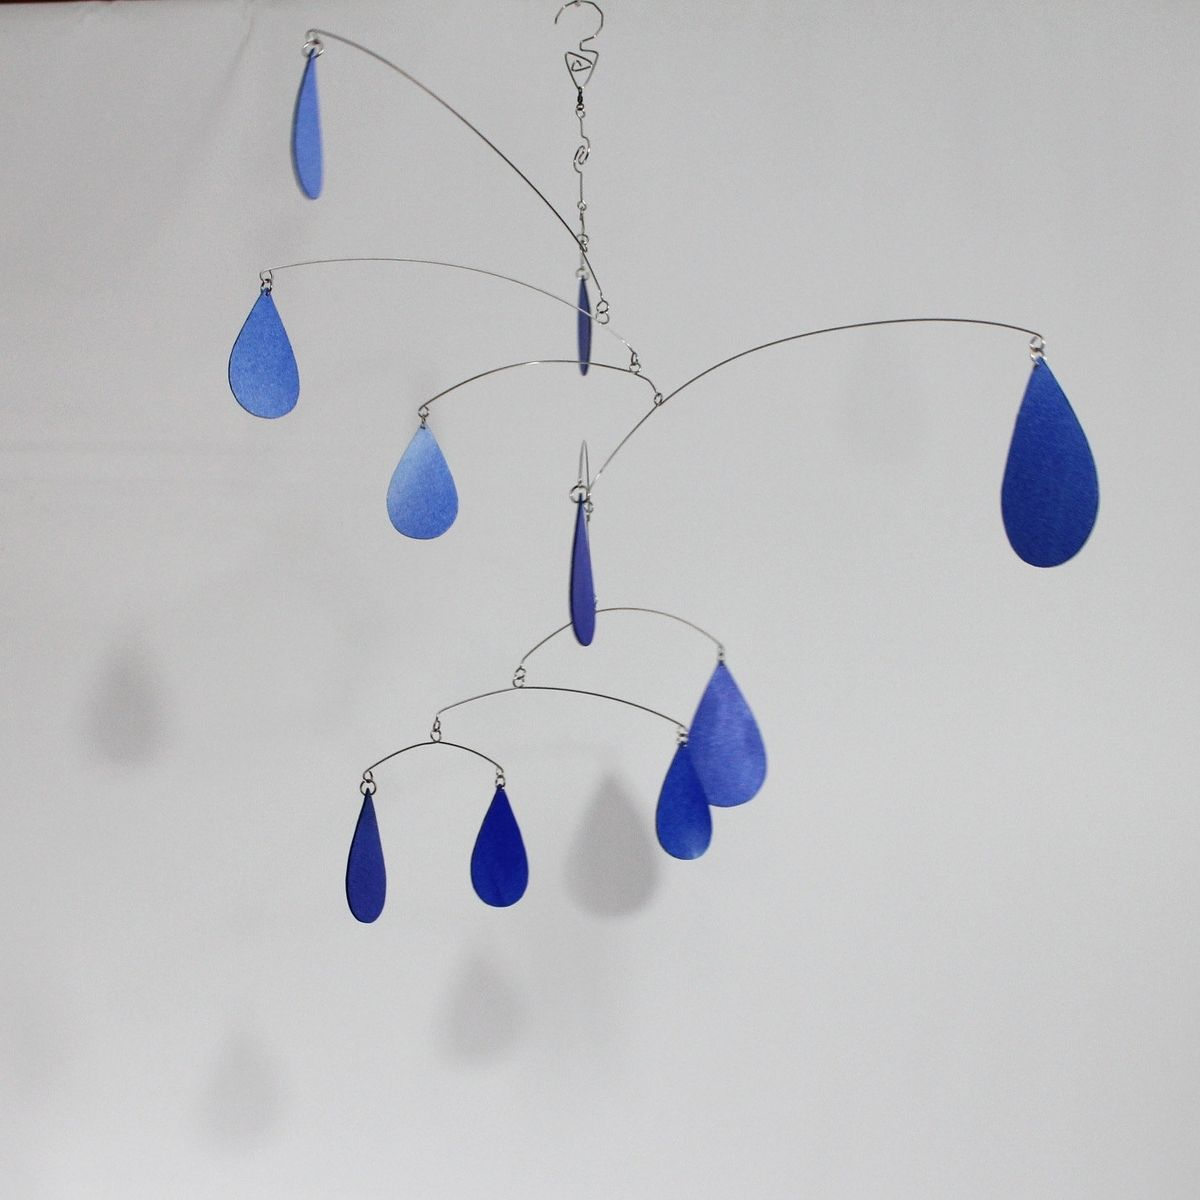 Custom Made Rain Drops Art Mobile Spring Shower Hanging